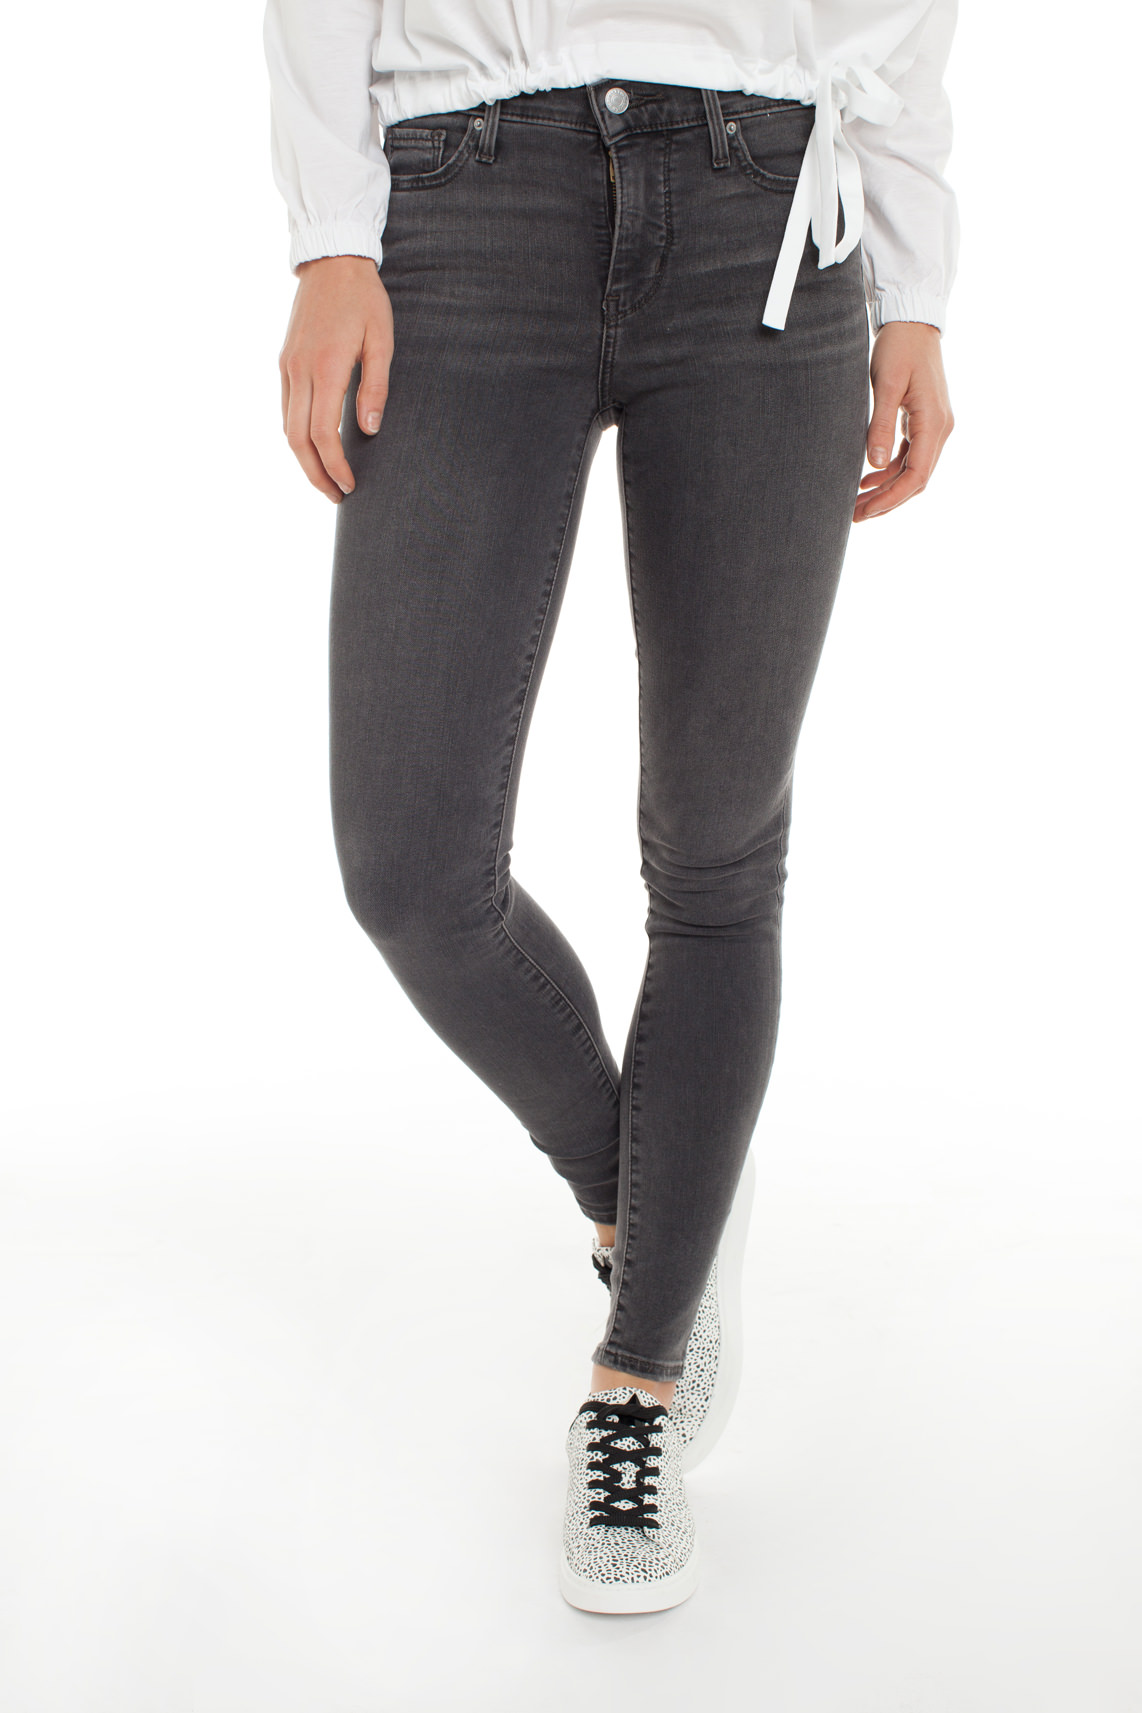 Levi s Dames Shaping skinny jeans L30 Grijs